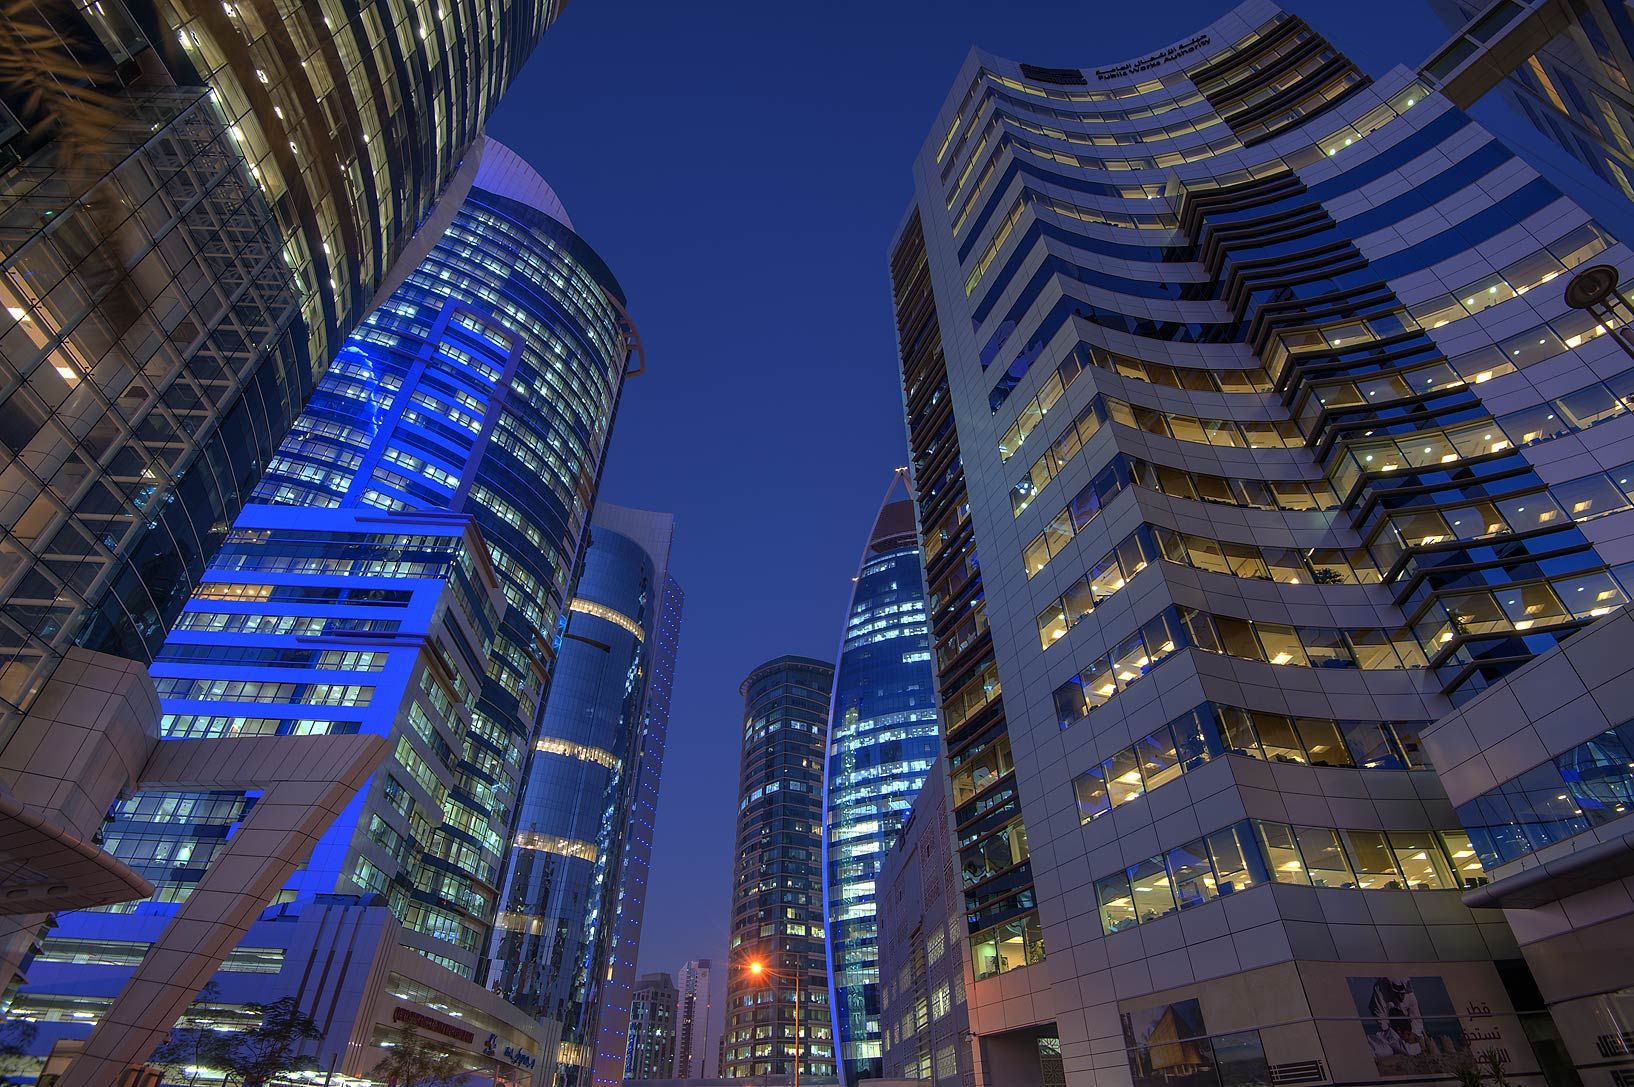 Area of Kahramaa and Public Works Authority 'Ashghal' buildings in West Bay. Doha, Qatar